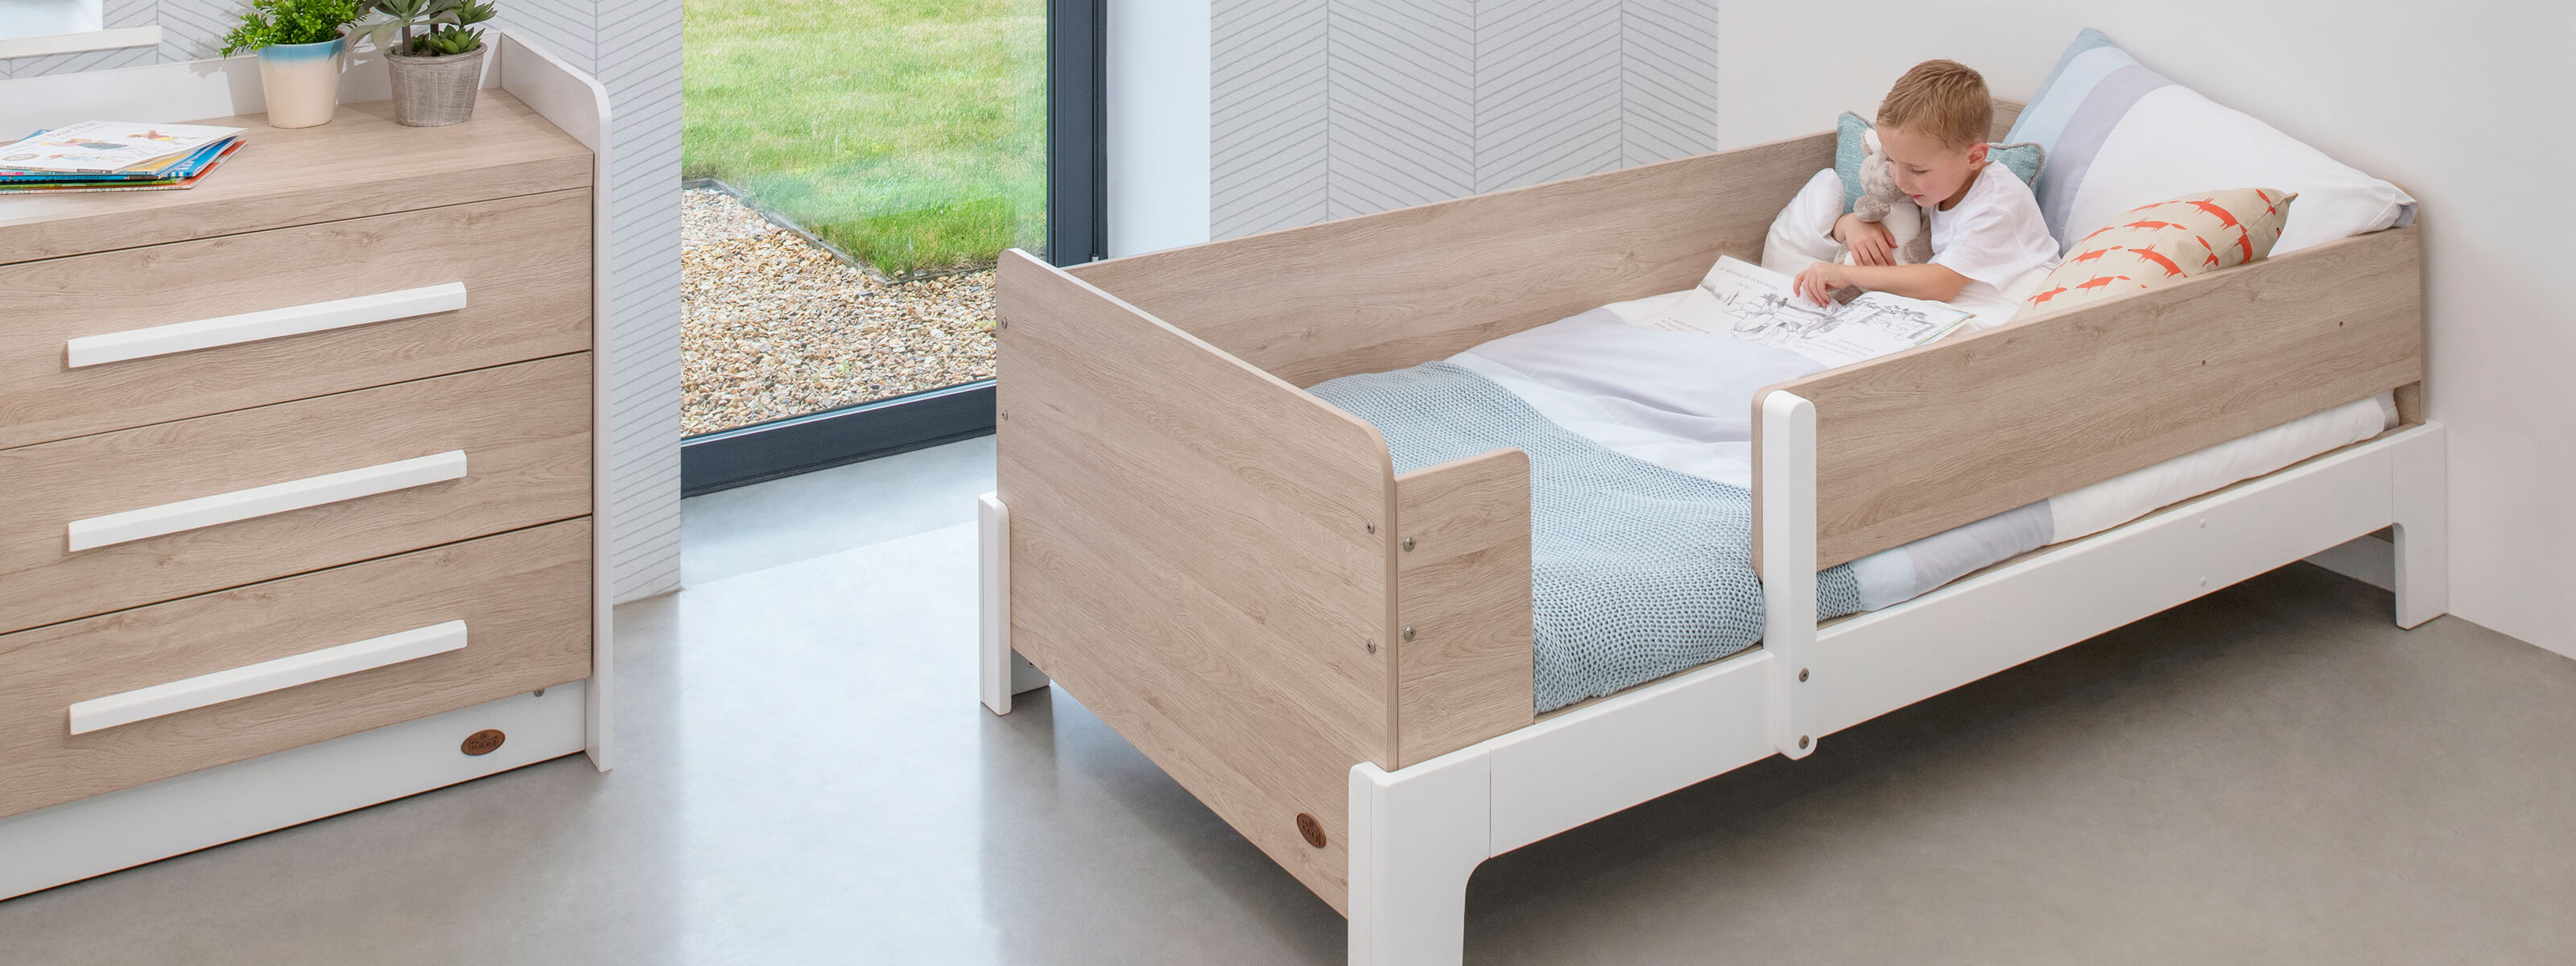 Product_Page_Lifestyles_1600_x_600_Natty_Guarded_Single_Bed_BAOA_FORWEB__2